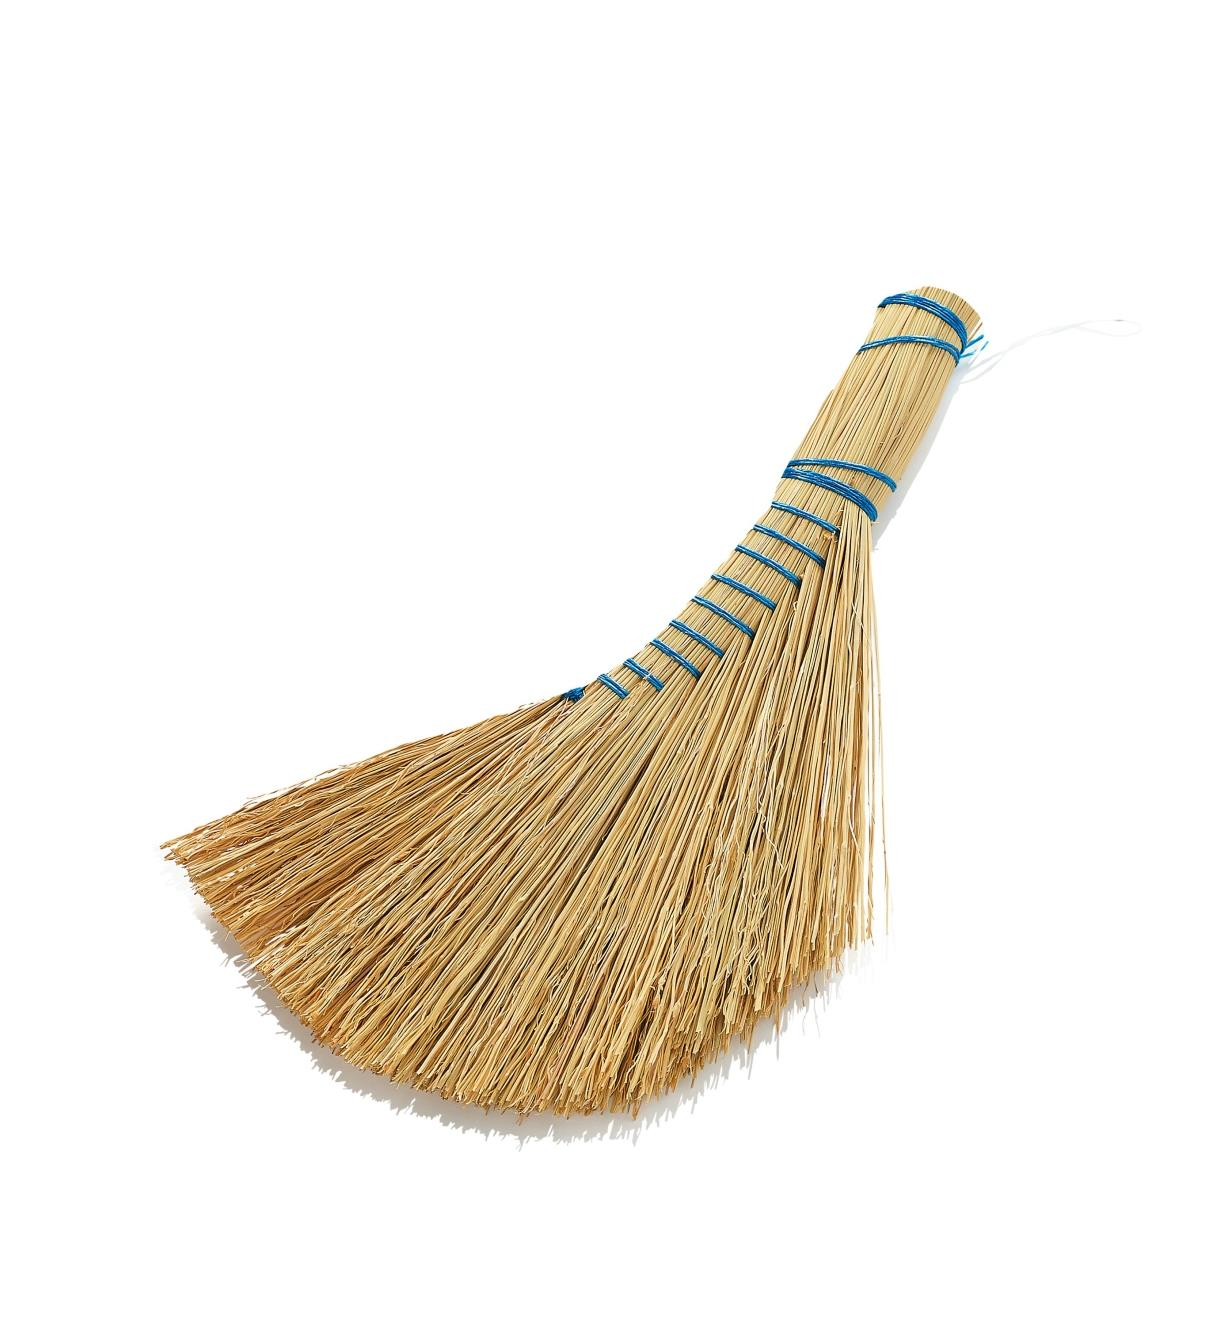 DB326 - Dutch Hand Broom